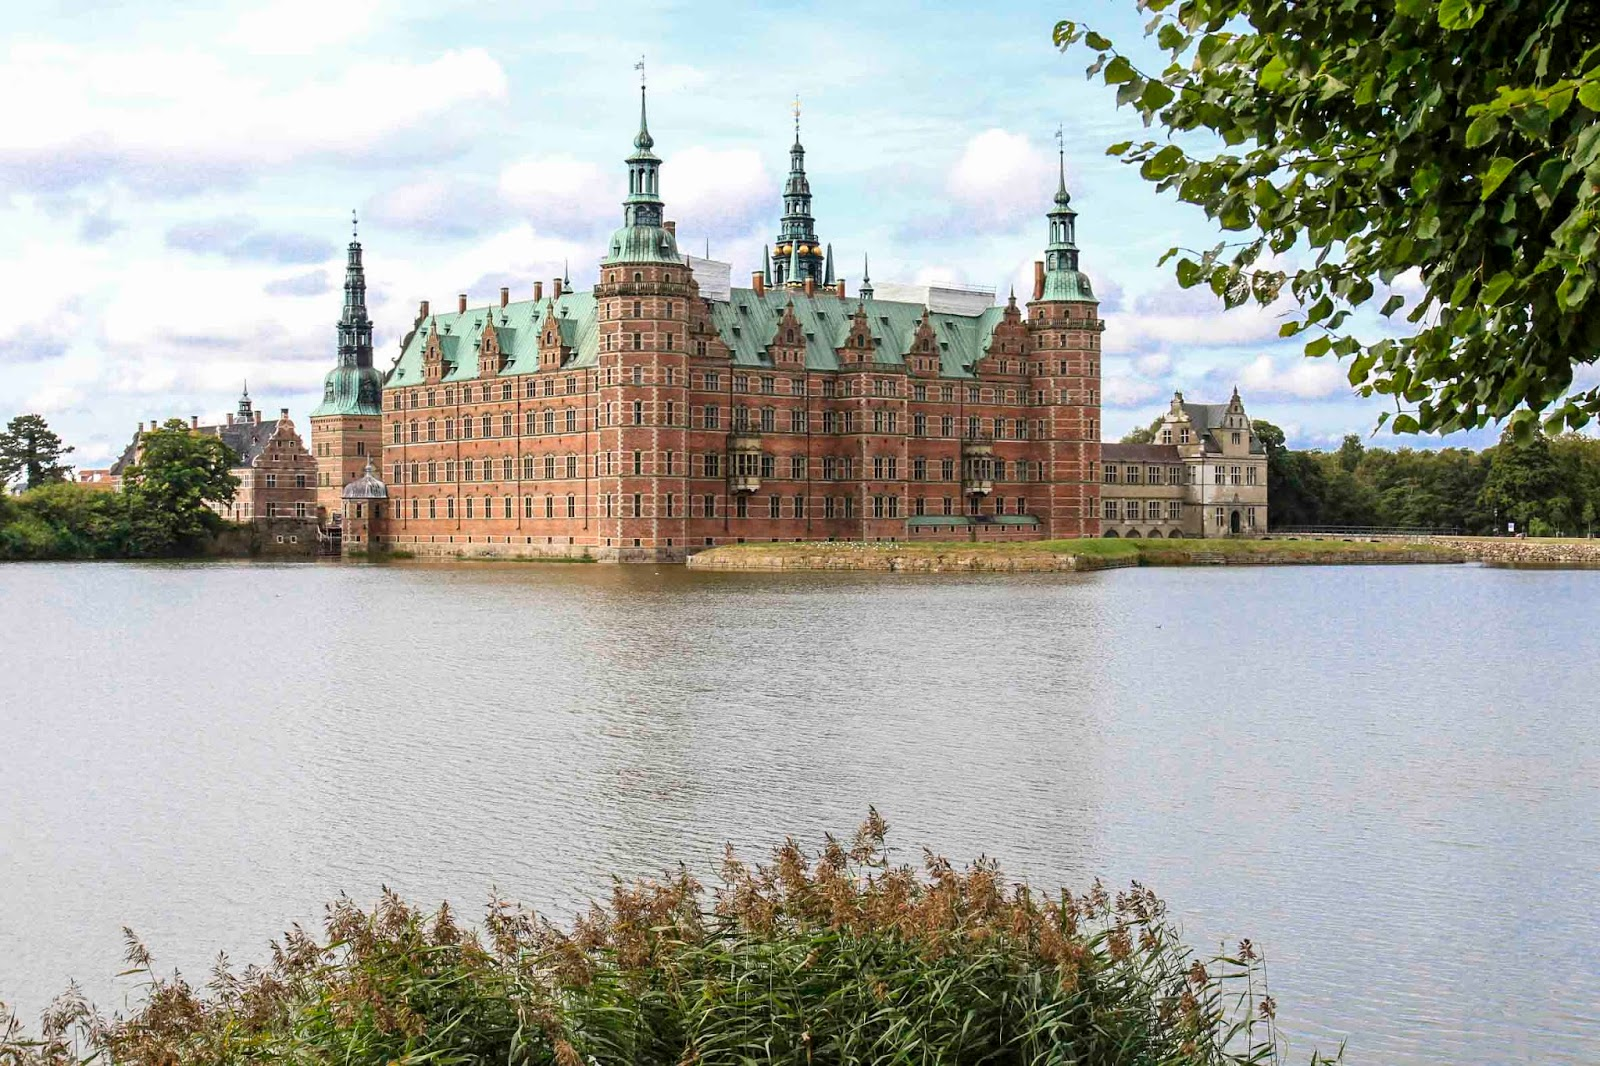 The museum of national history at frederiksborg castle copenhagen -  We Took A Regional Train To Hillerod About 40 Miles North Of Copenhagen To Visit Frederiksborg Castle Which Now Houses The Museum Of National History